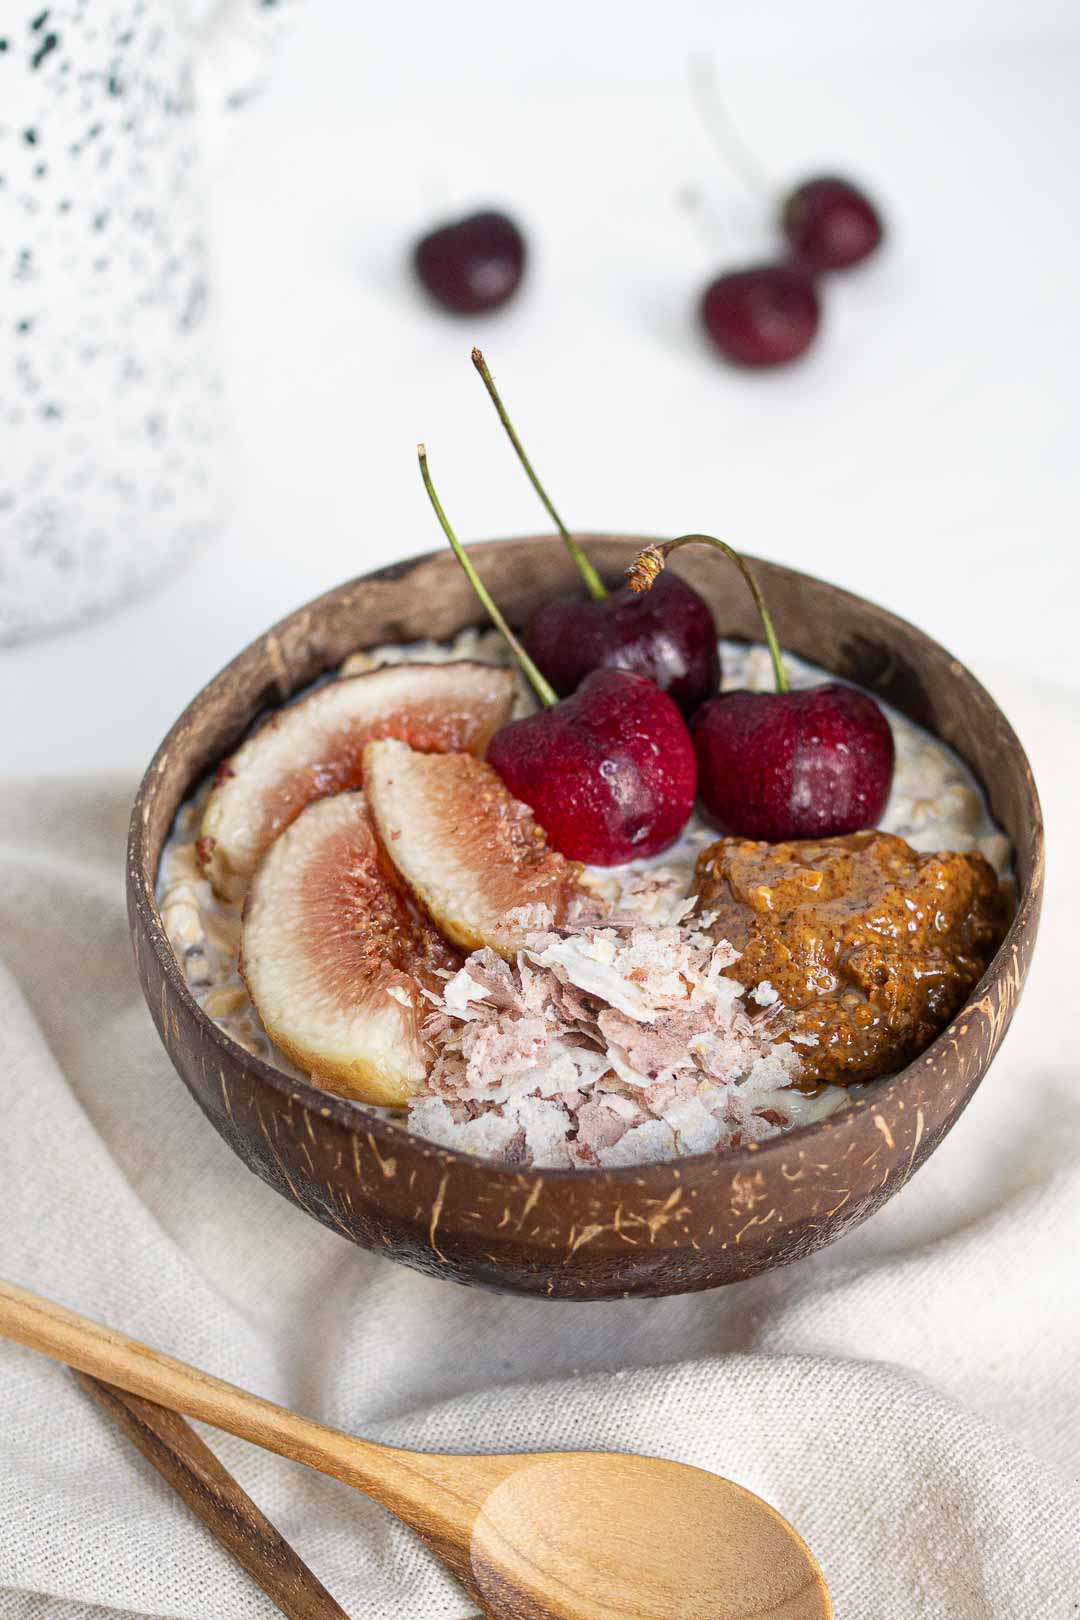 almond milk overnight oats with fig, brown rice flakes, cherries and almond butter in a coconut bowl